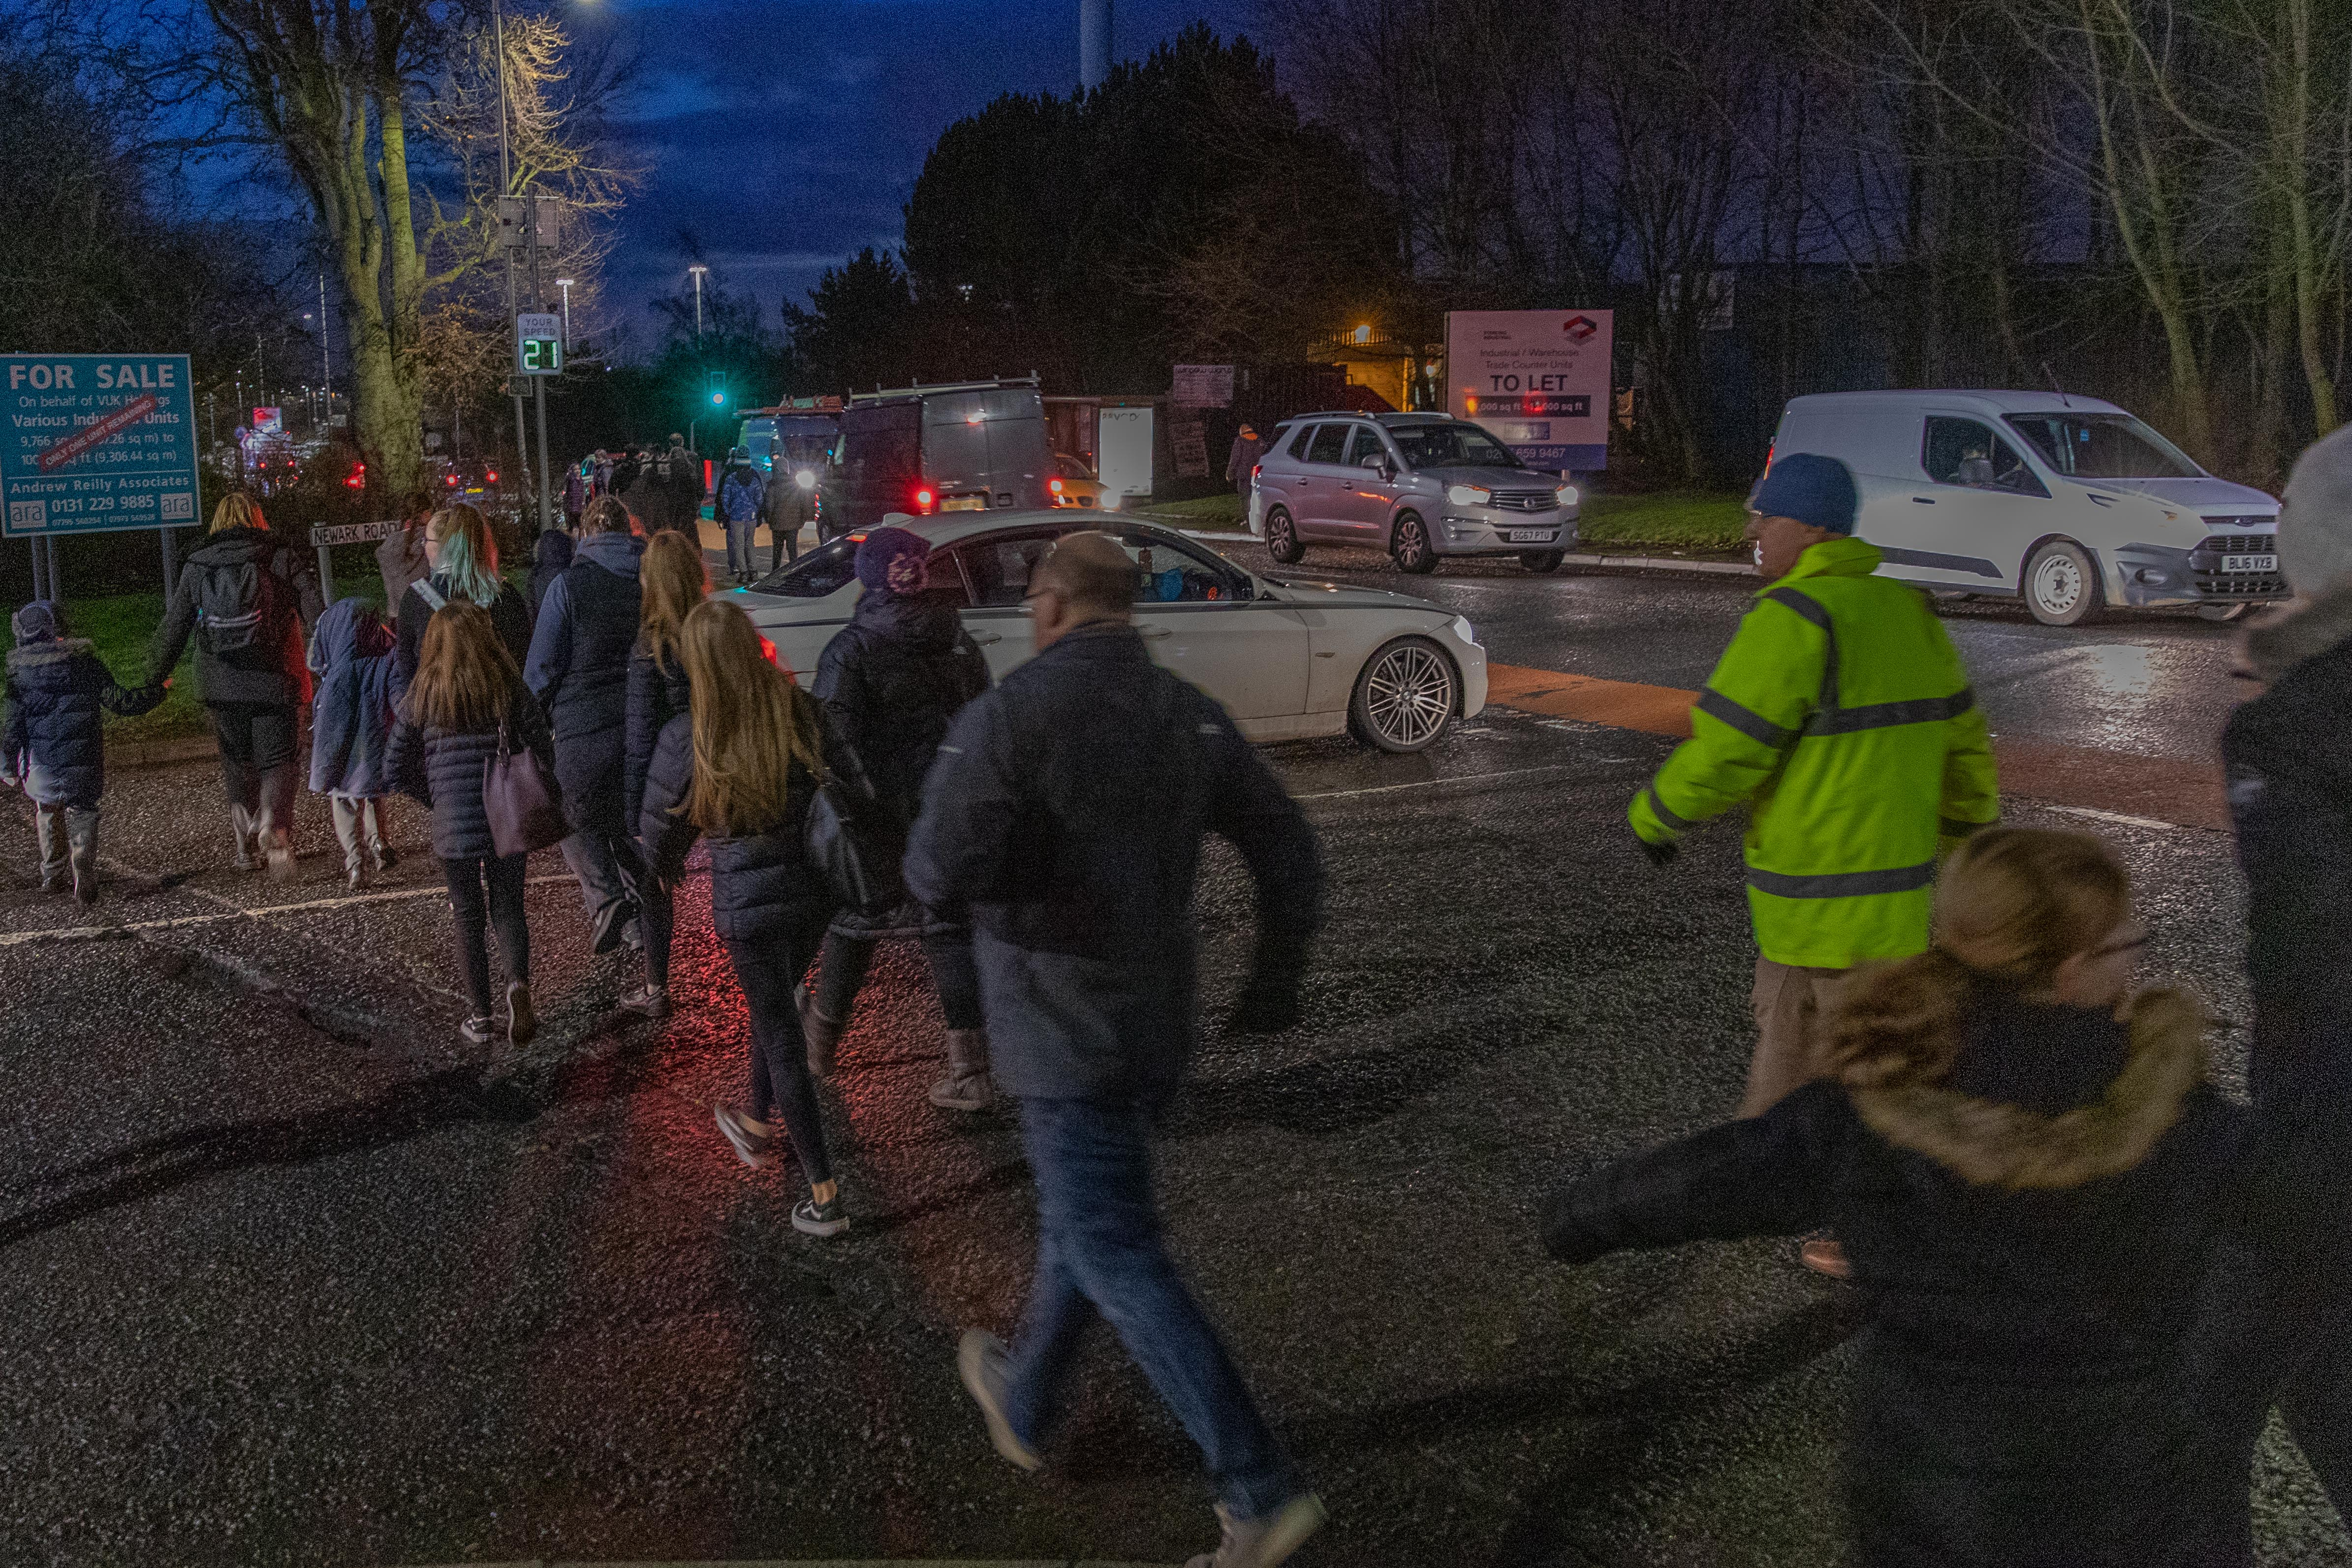 Parents and their children walk the proposed route that Fife Council state their children will need to walk to school once the bus service is terminated if plans go ahead.